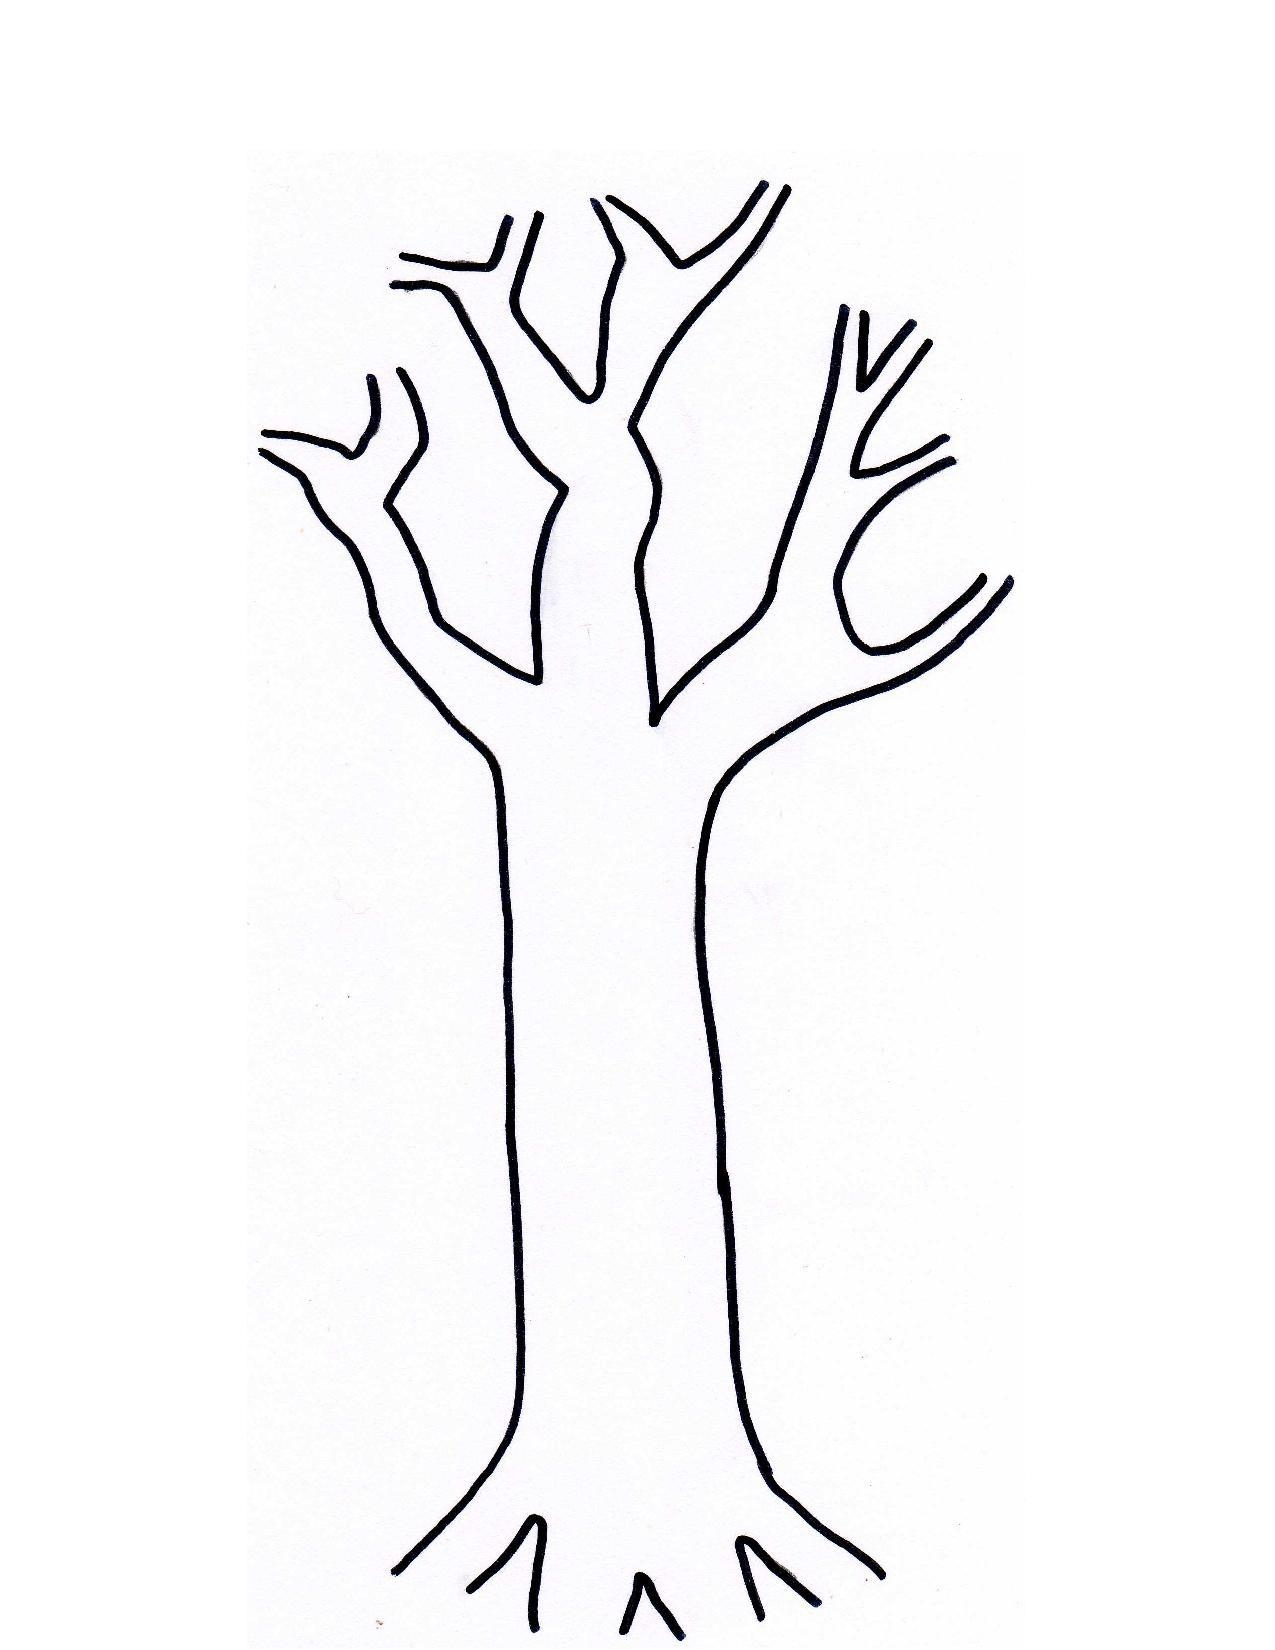 bare tree clipart black and white png 20 free Cliparts ... (1275 x 1650 Pixel)